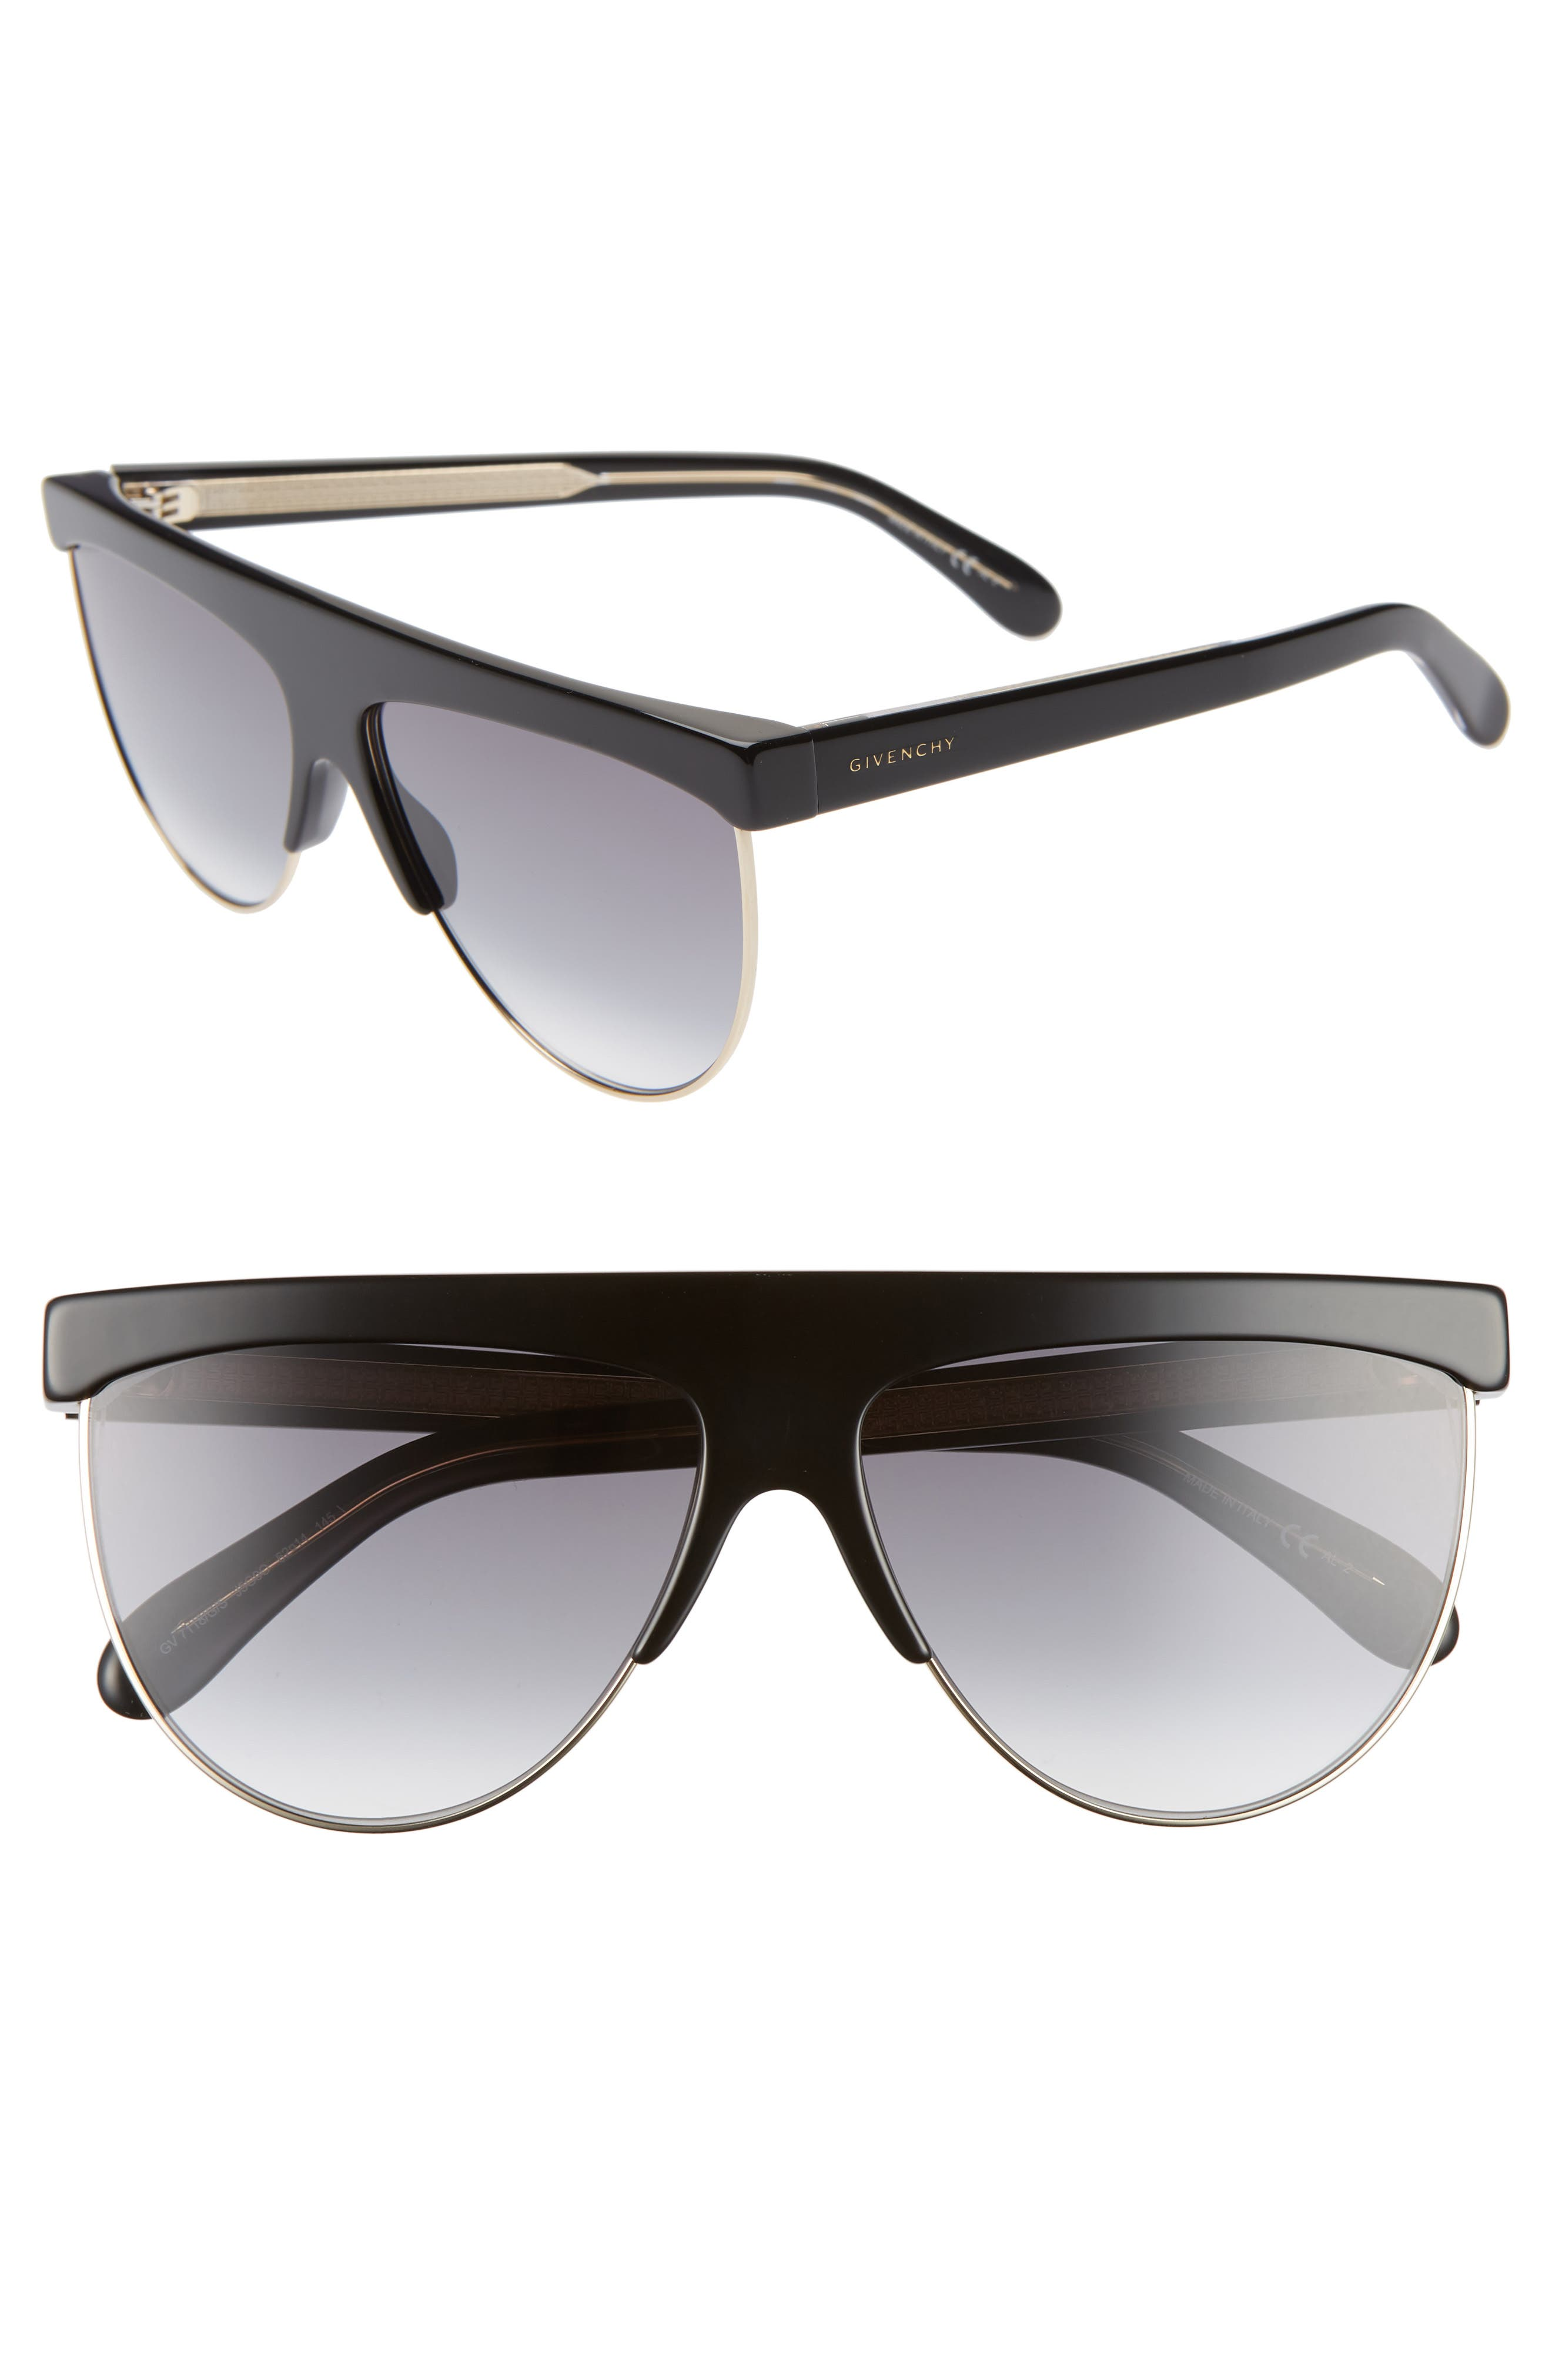 Givenchy 62Mm Oversize Flat Top Sunglasses - Black/ Gold